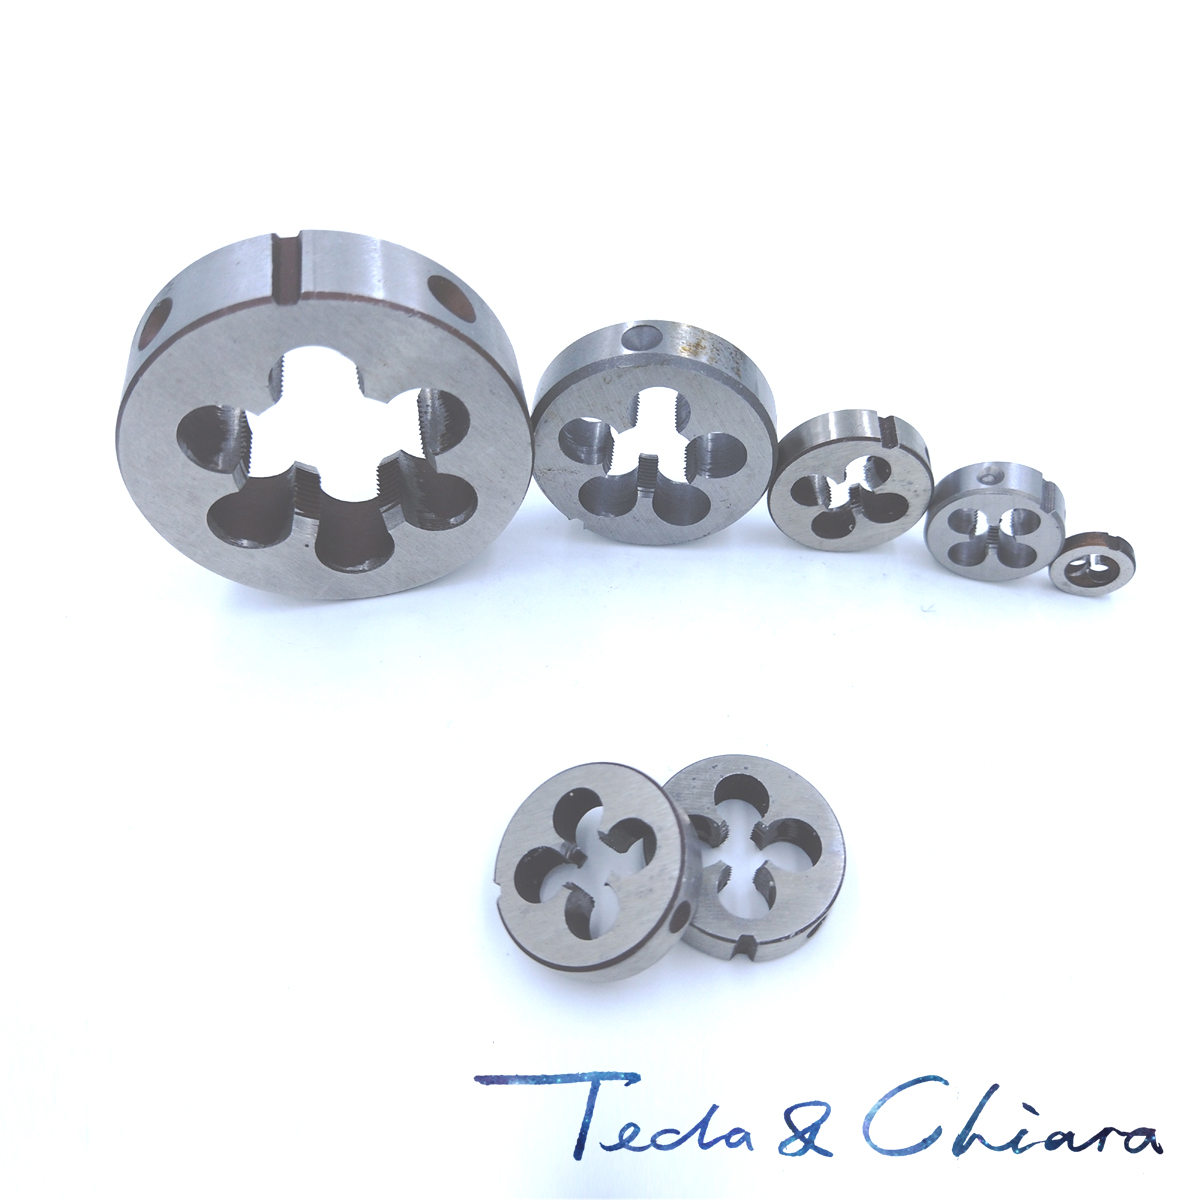 1Pc M14 M15 X 0.75mm 1mm 1.25mm 1.5mm 2mm Metric Right Hand Die Threading Tools For Mold Machining * 0.75 1 1.25 1.5 2